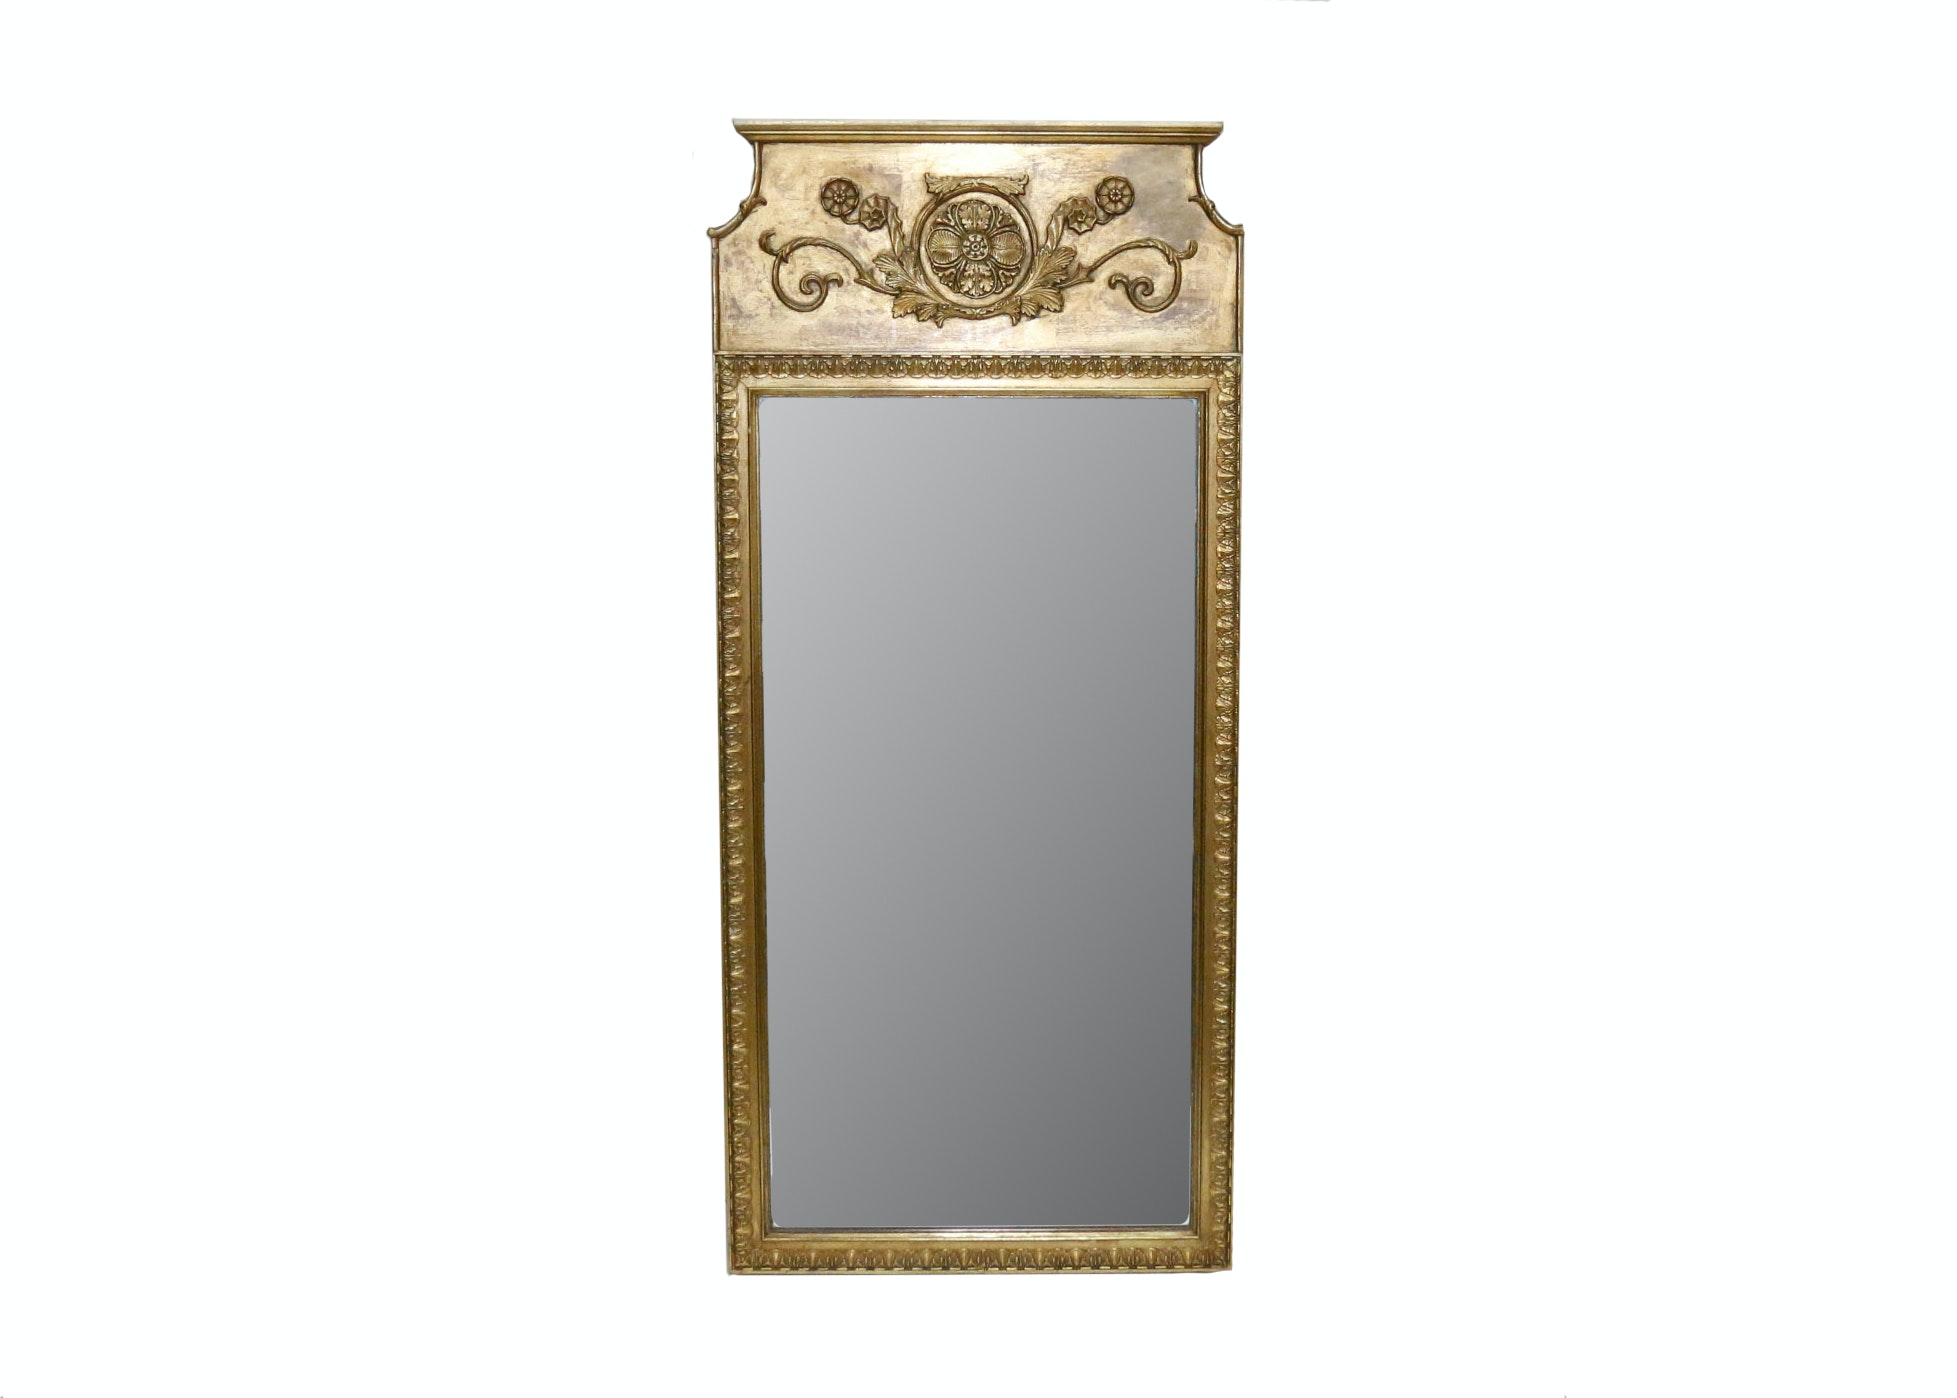 Gold Toned Wooden Ornate Wall Mirror